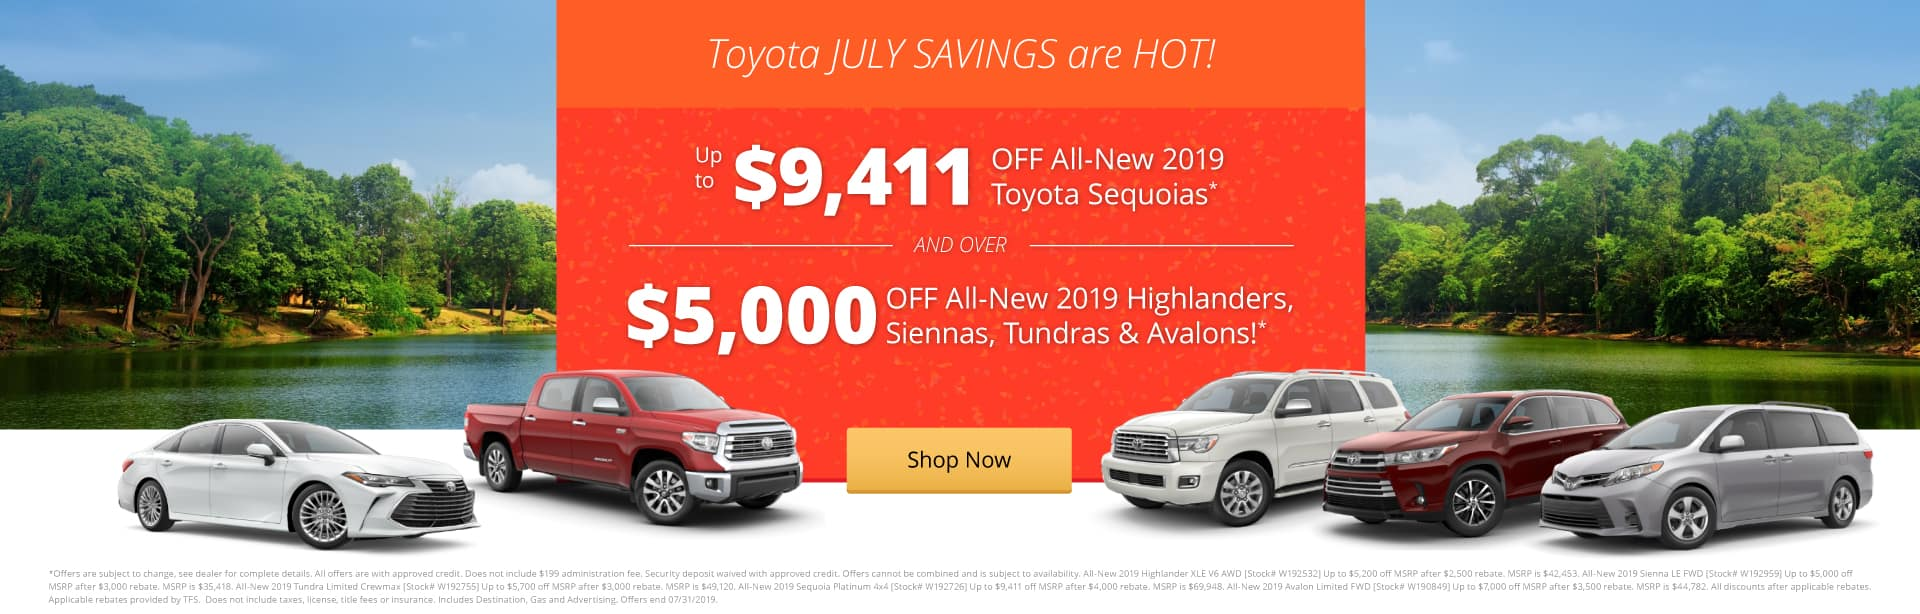 Toyota July Savings are HOT!